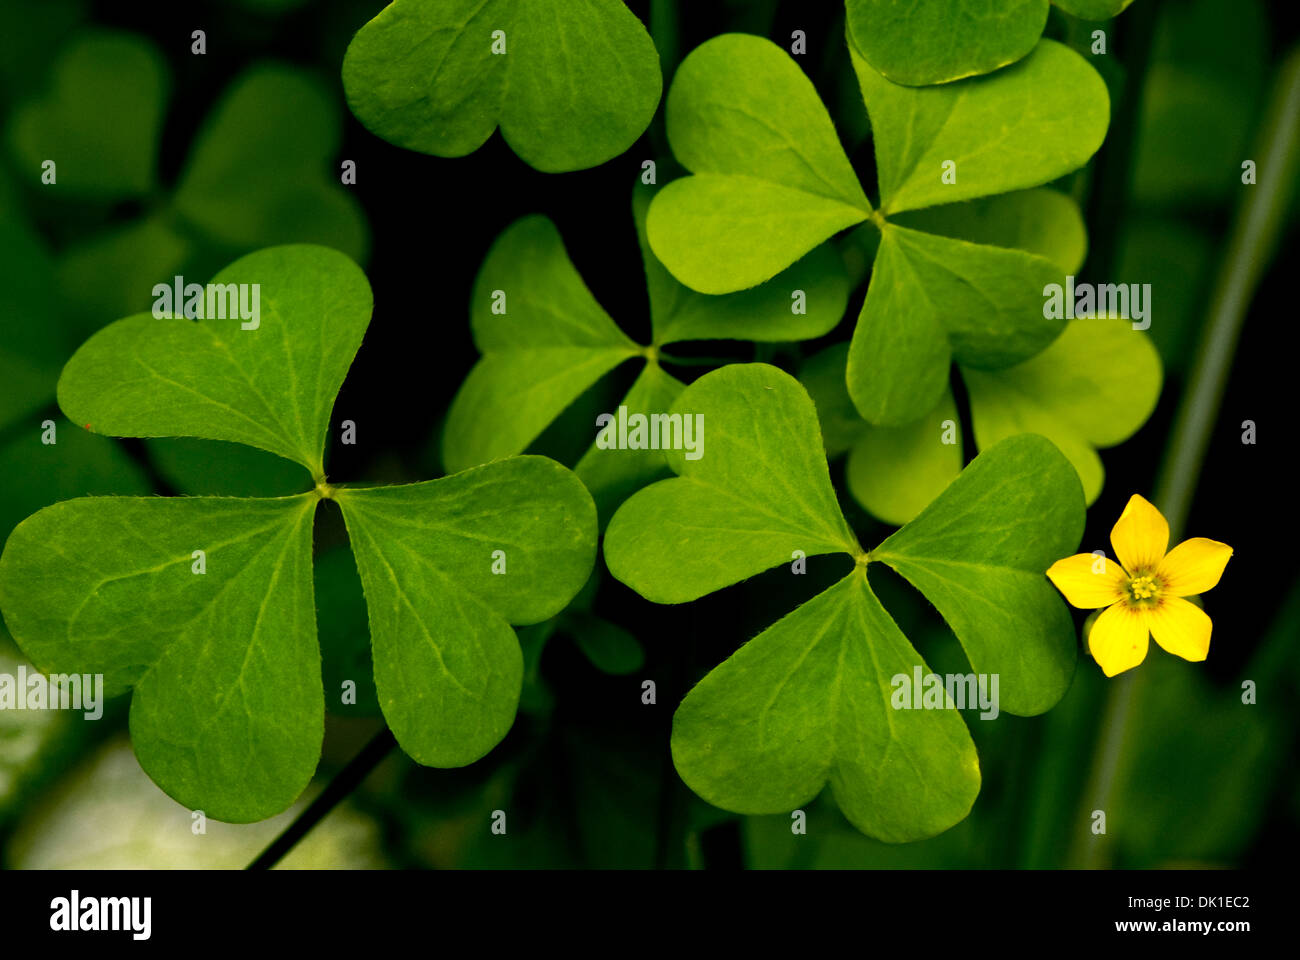 Yellow clover flower stock photos yellow clover flower stock very large green clover with a small five sided star shaped yellow flower stock mightylinksfo